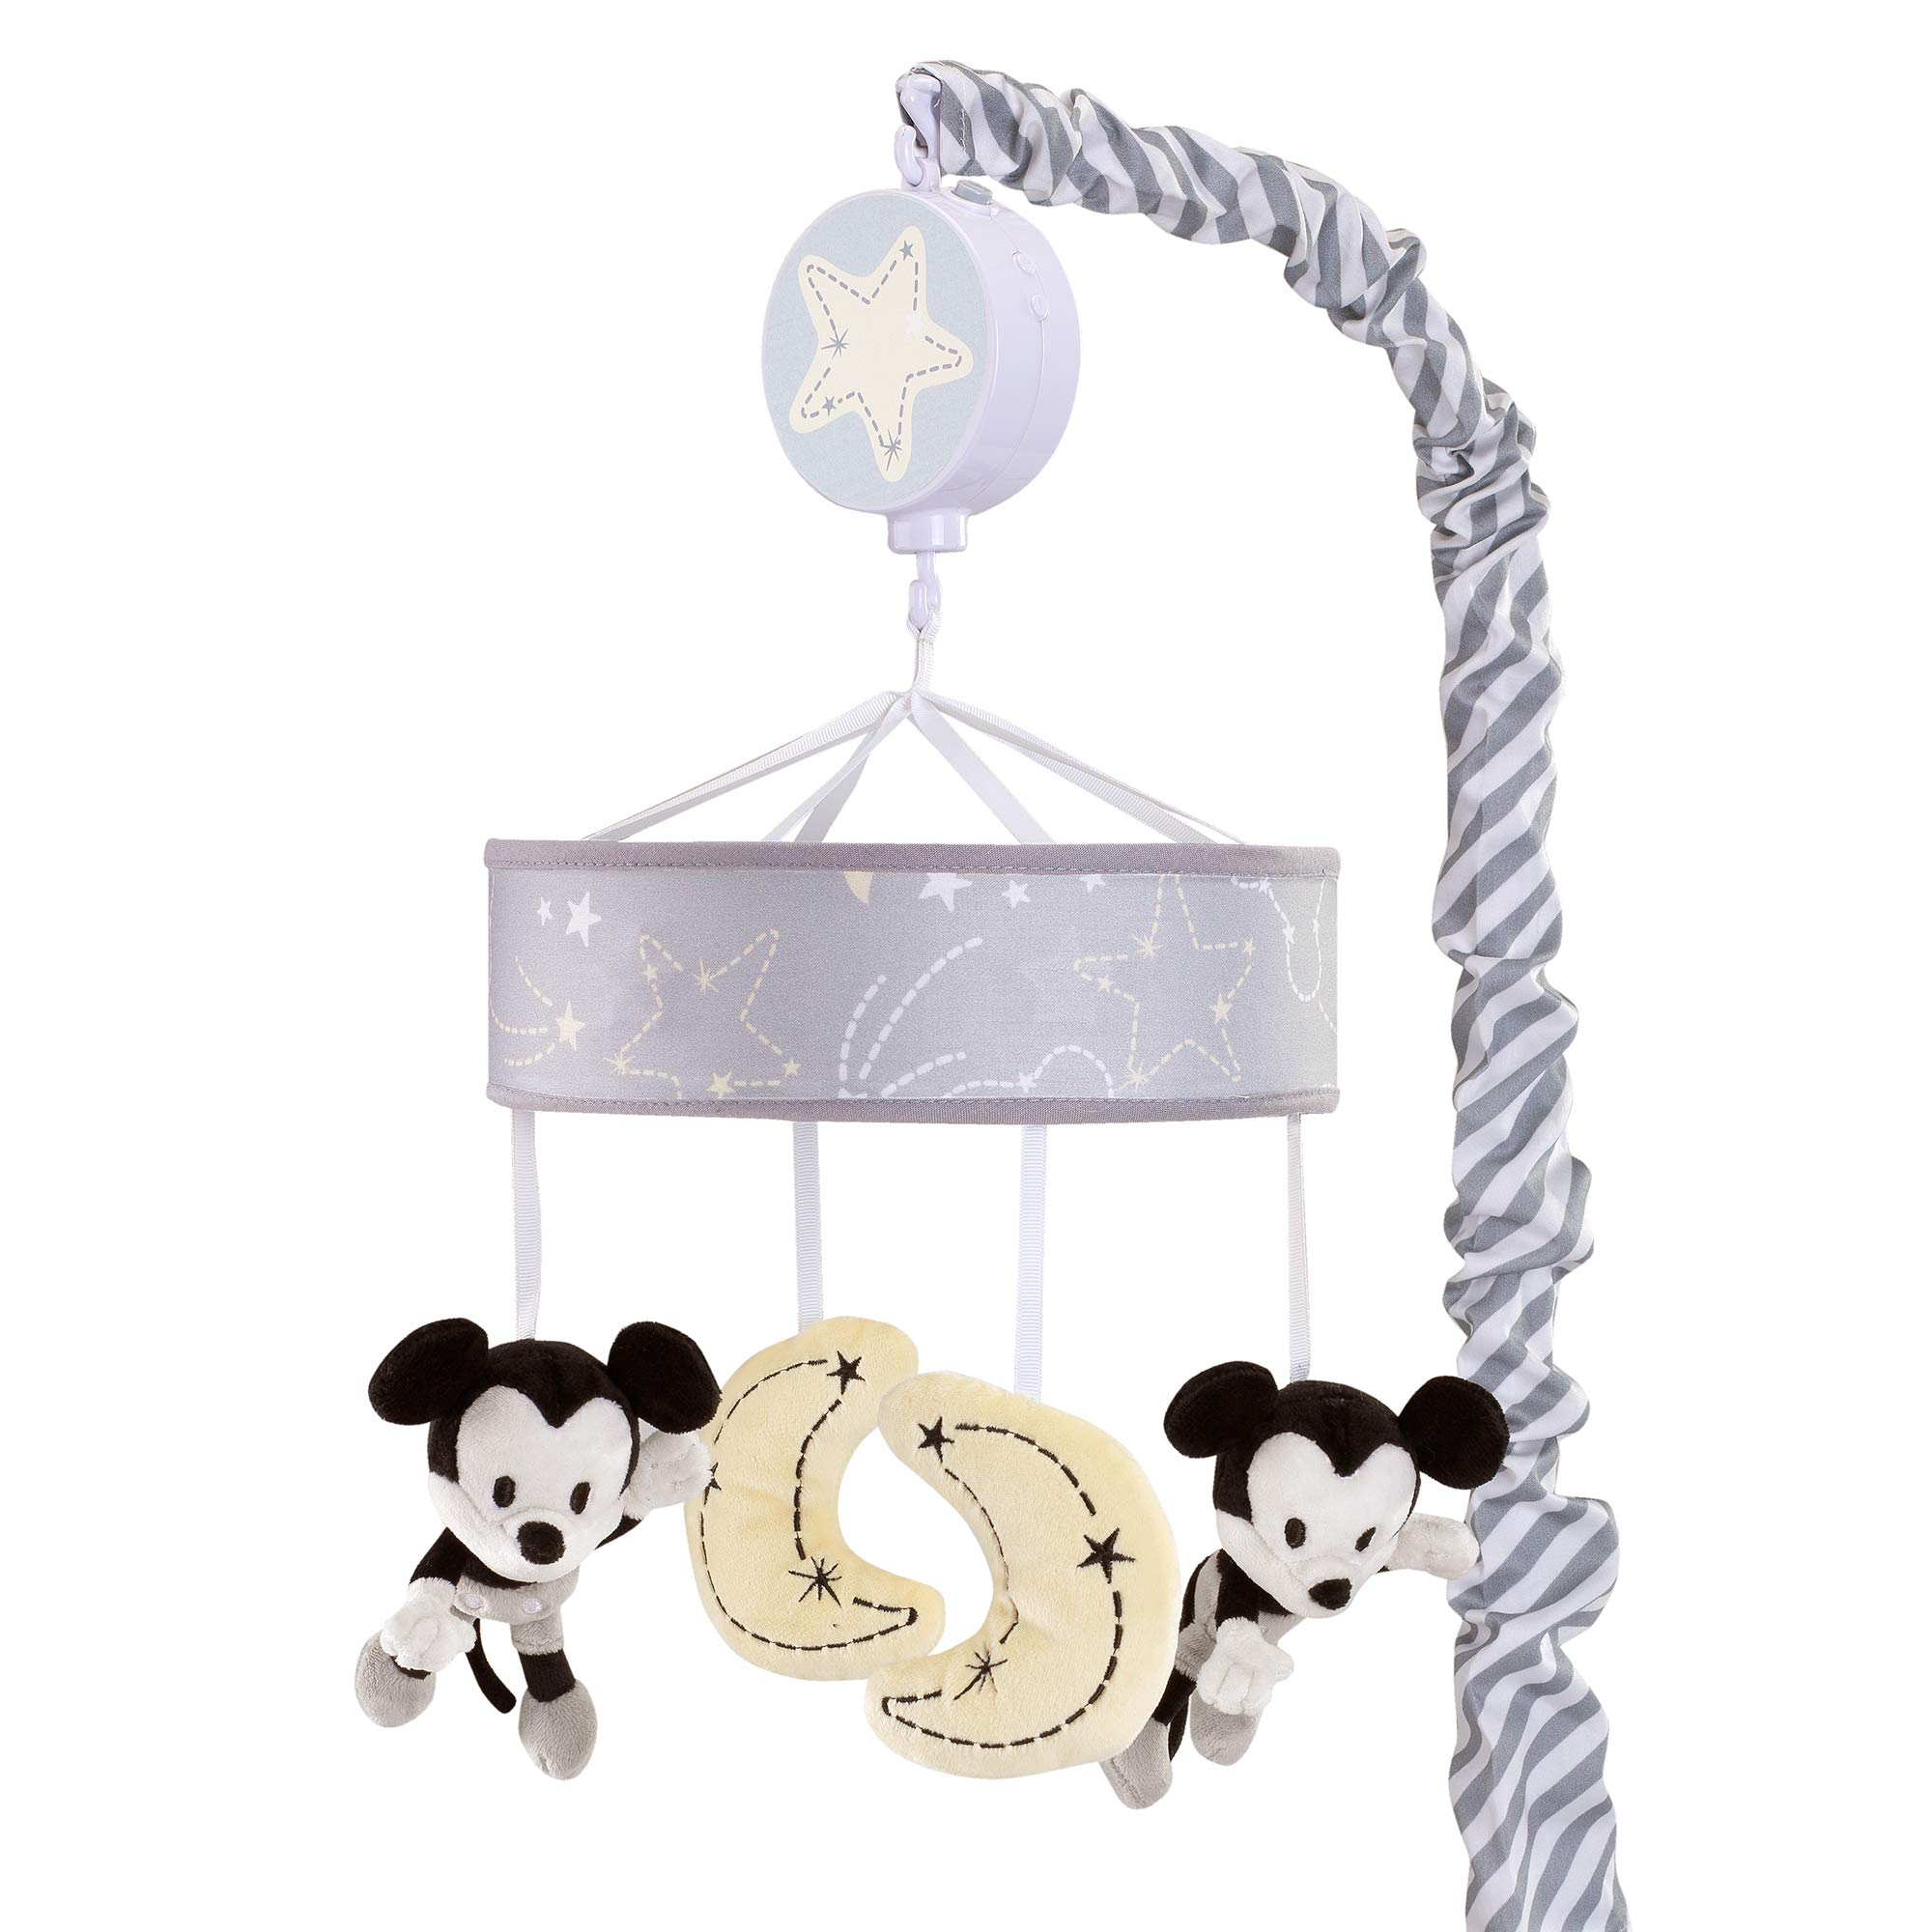 Lamb & Ivy Disney Baby Mickey Mouse Musical Baby Crib Mobile, Gray/Yellow